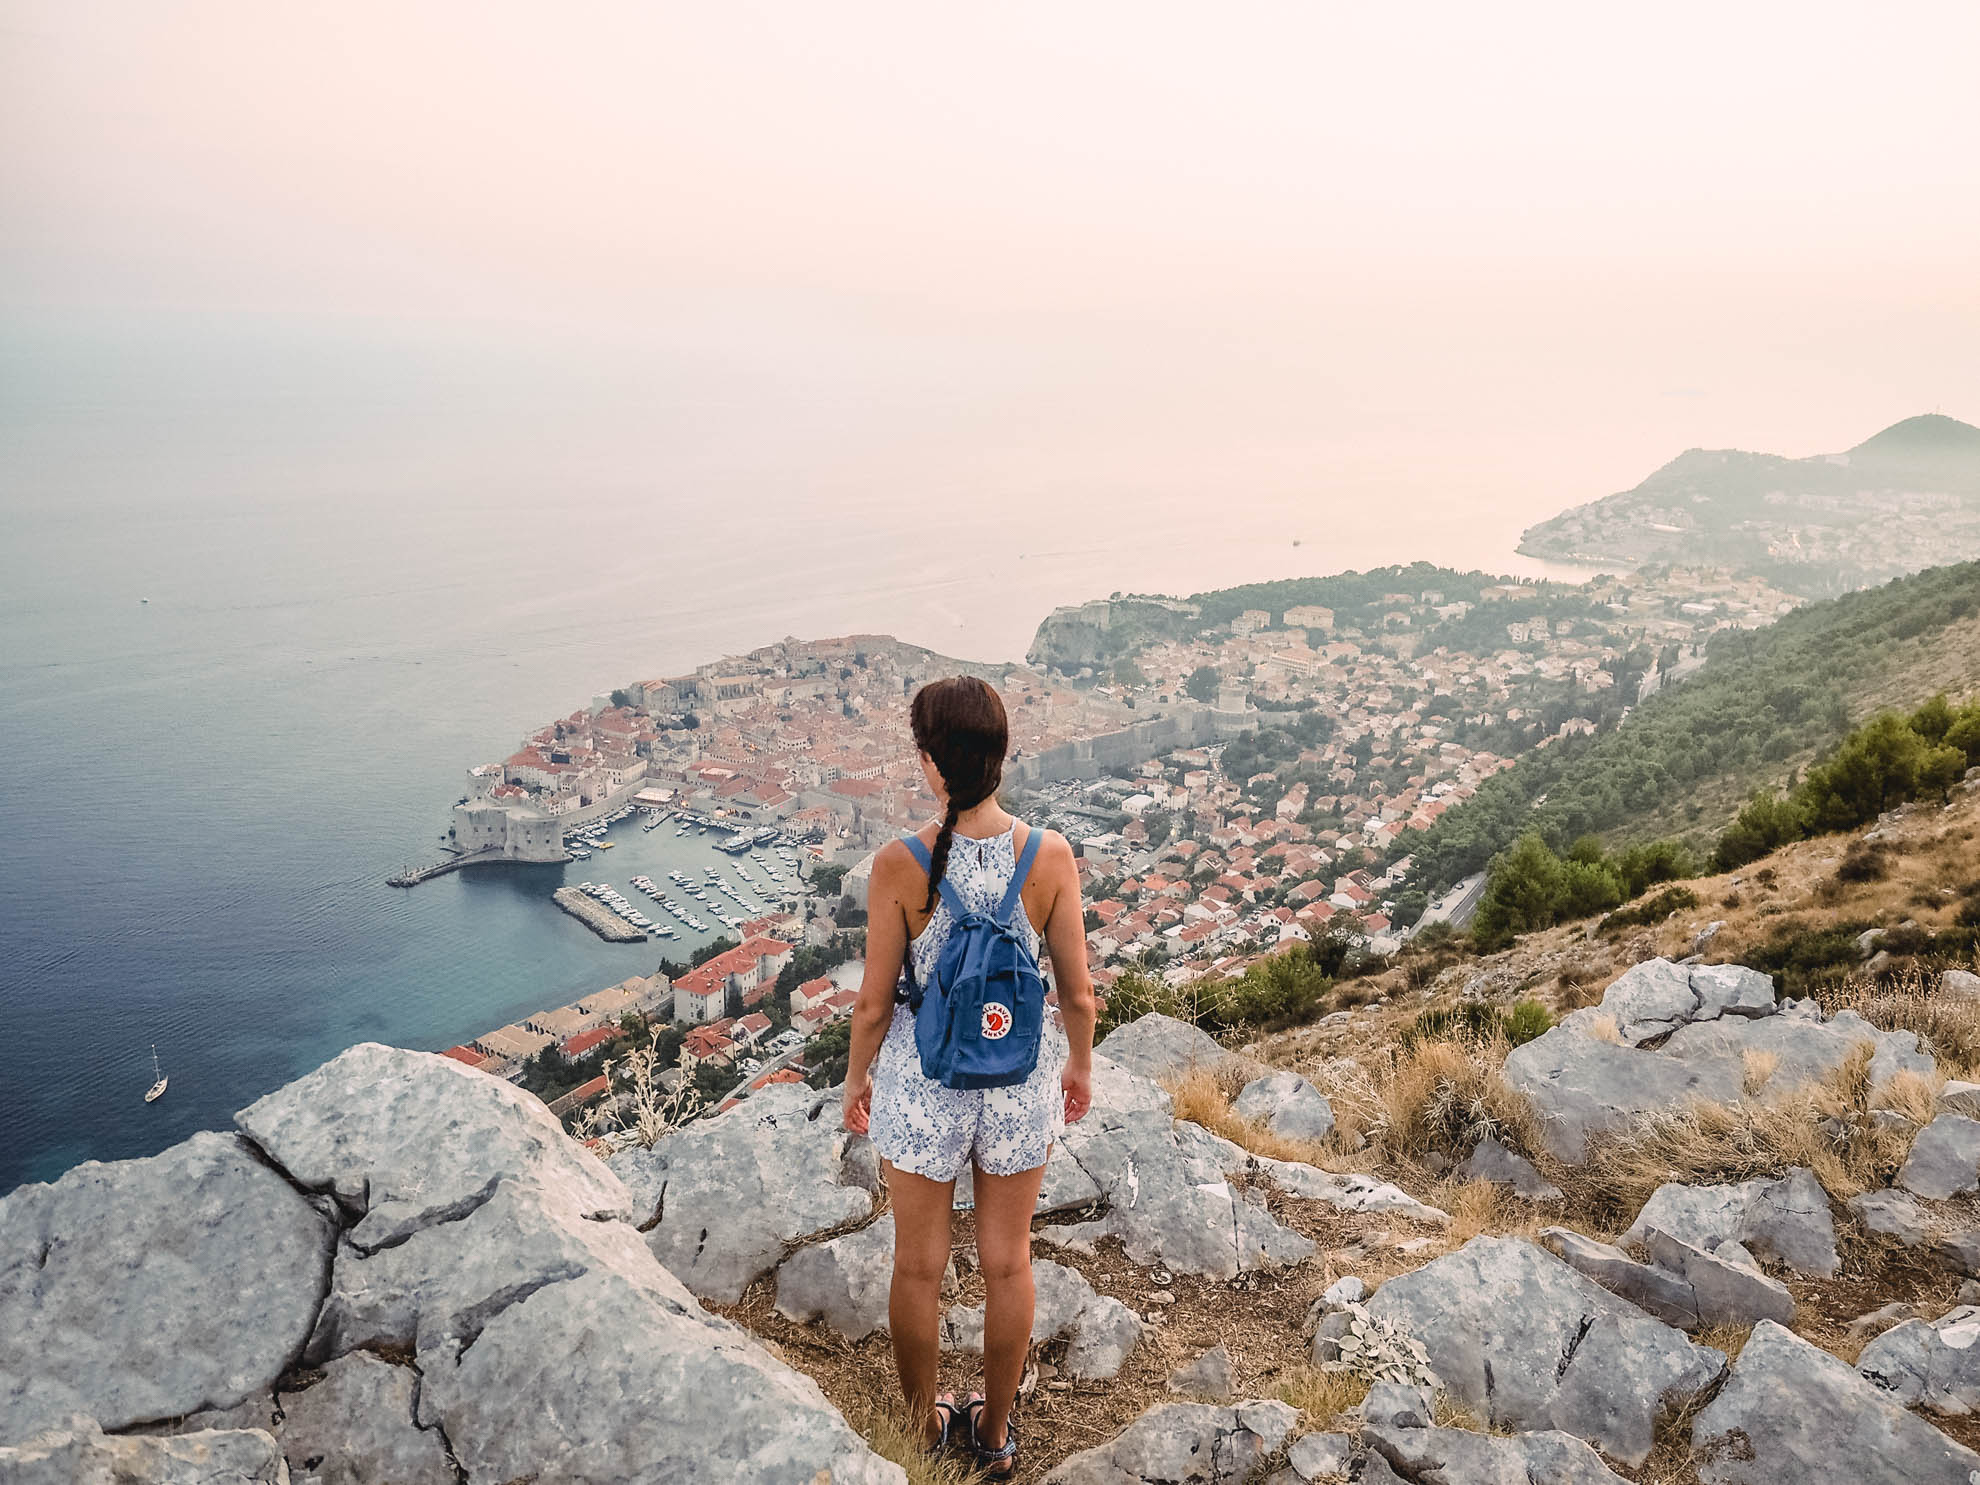 The Most Instagram-Worthy Places for Dubrovnik Photos